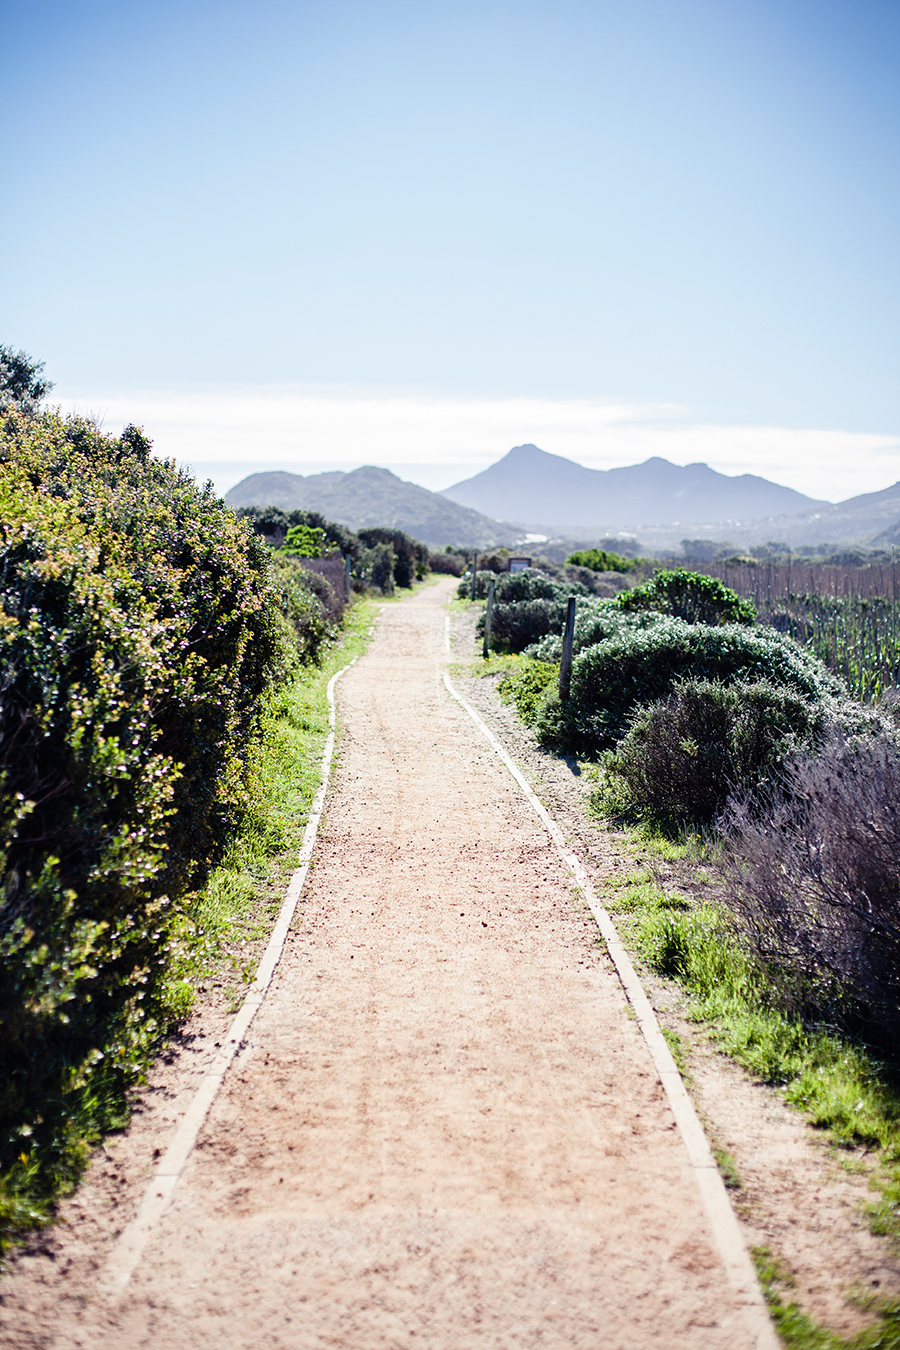 Trail at the Silvermine Wetland Conservation Area, Fish Hoek, Cape Town, South Africa.